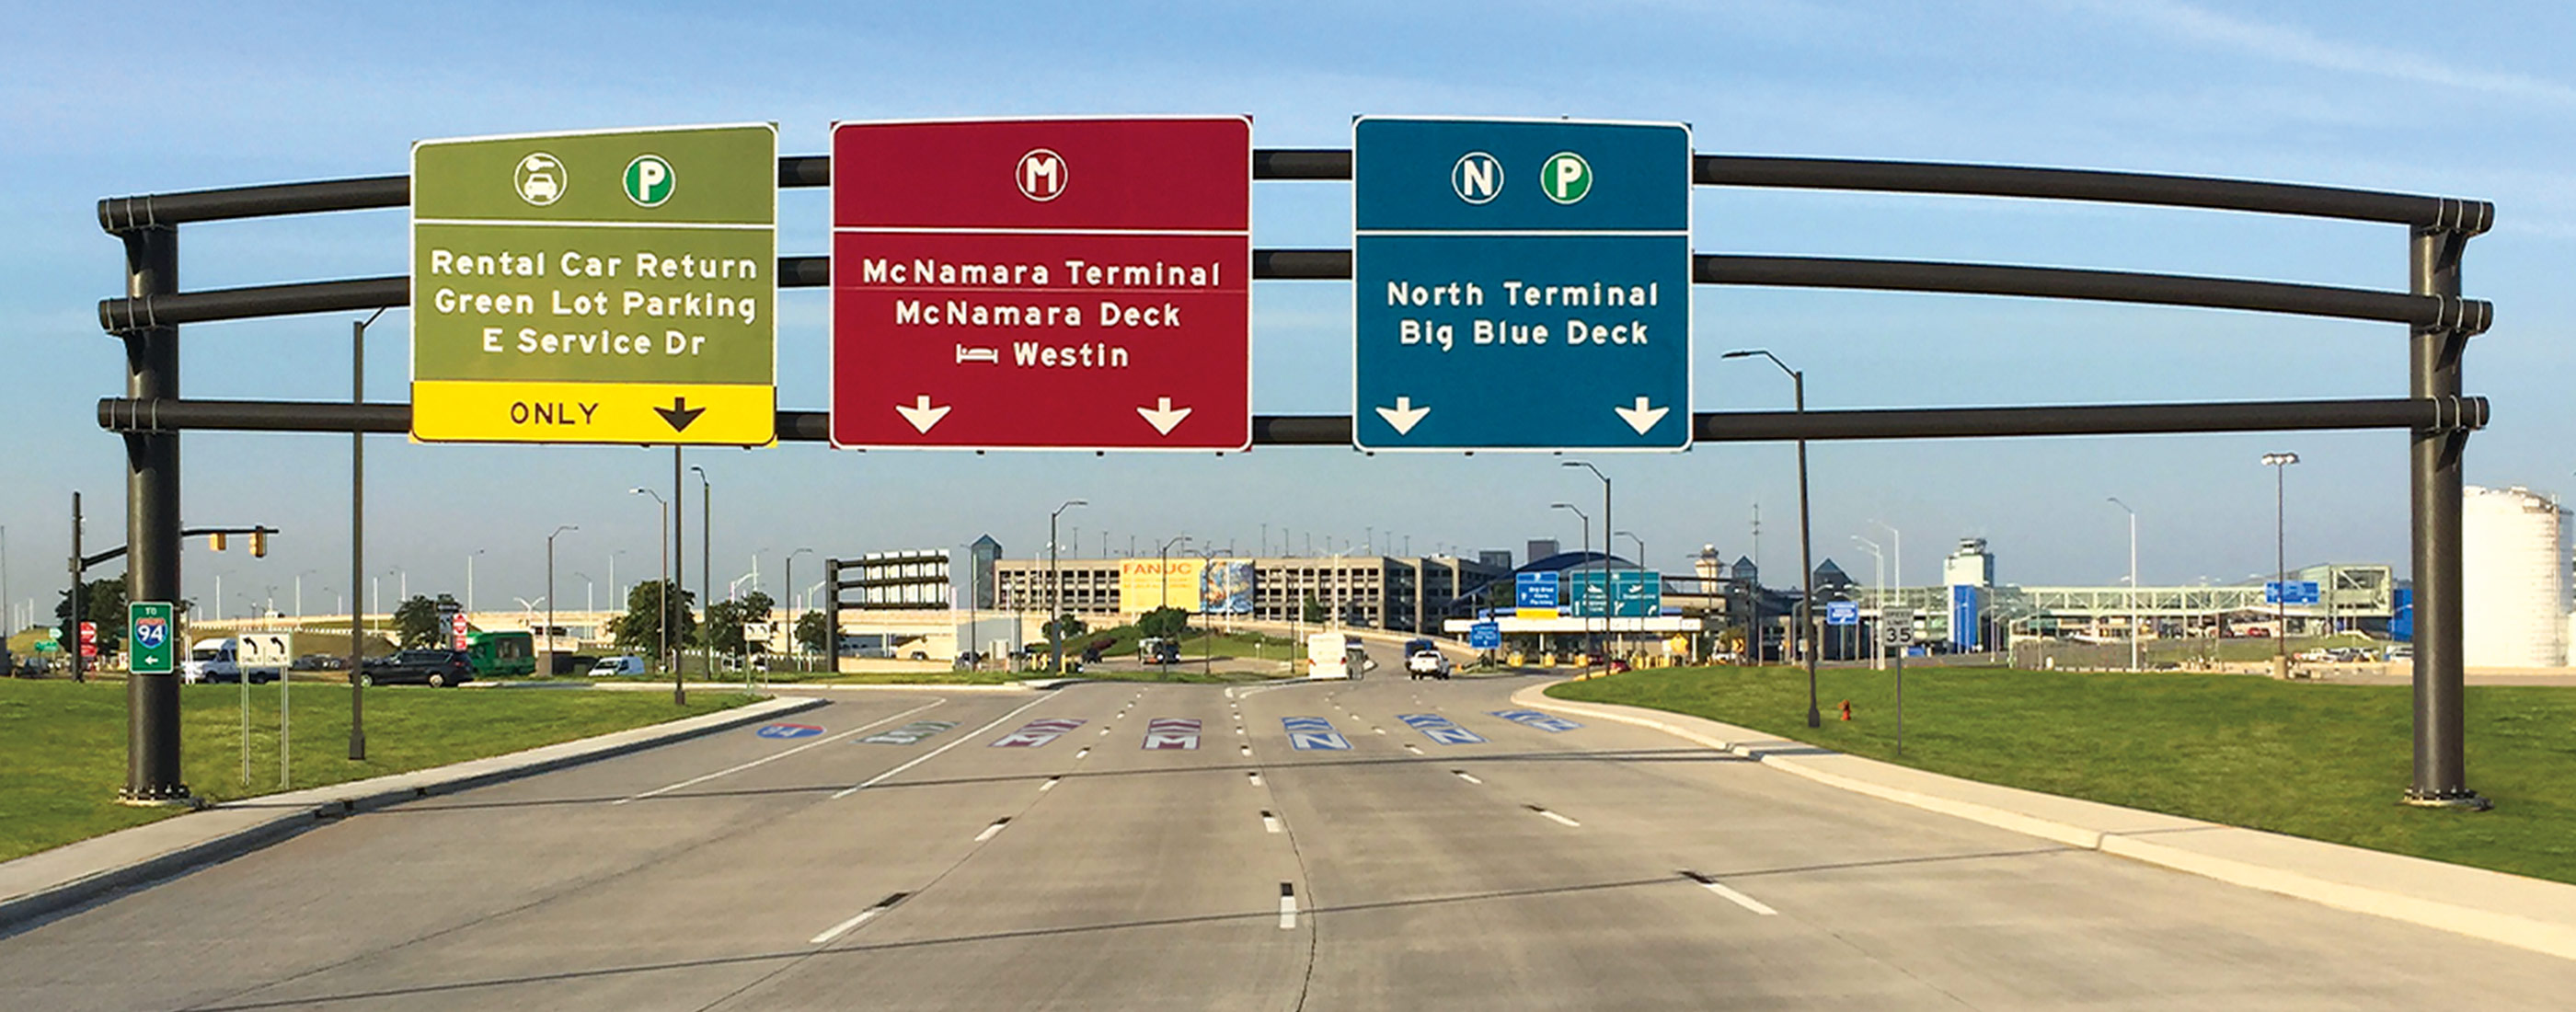 Signage pavement treatment at the Detroit Metro Airport.